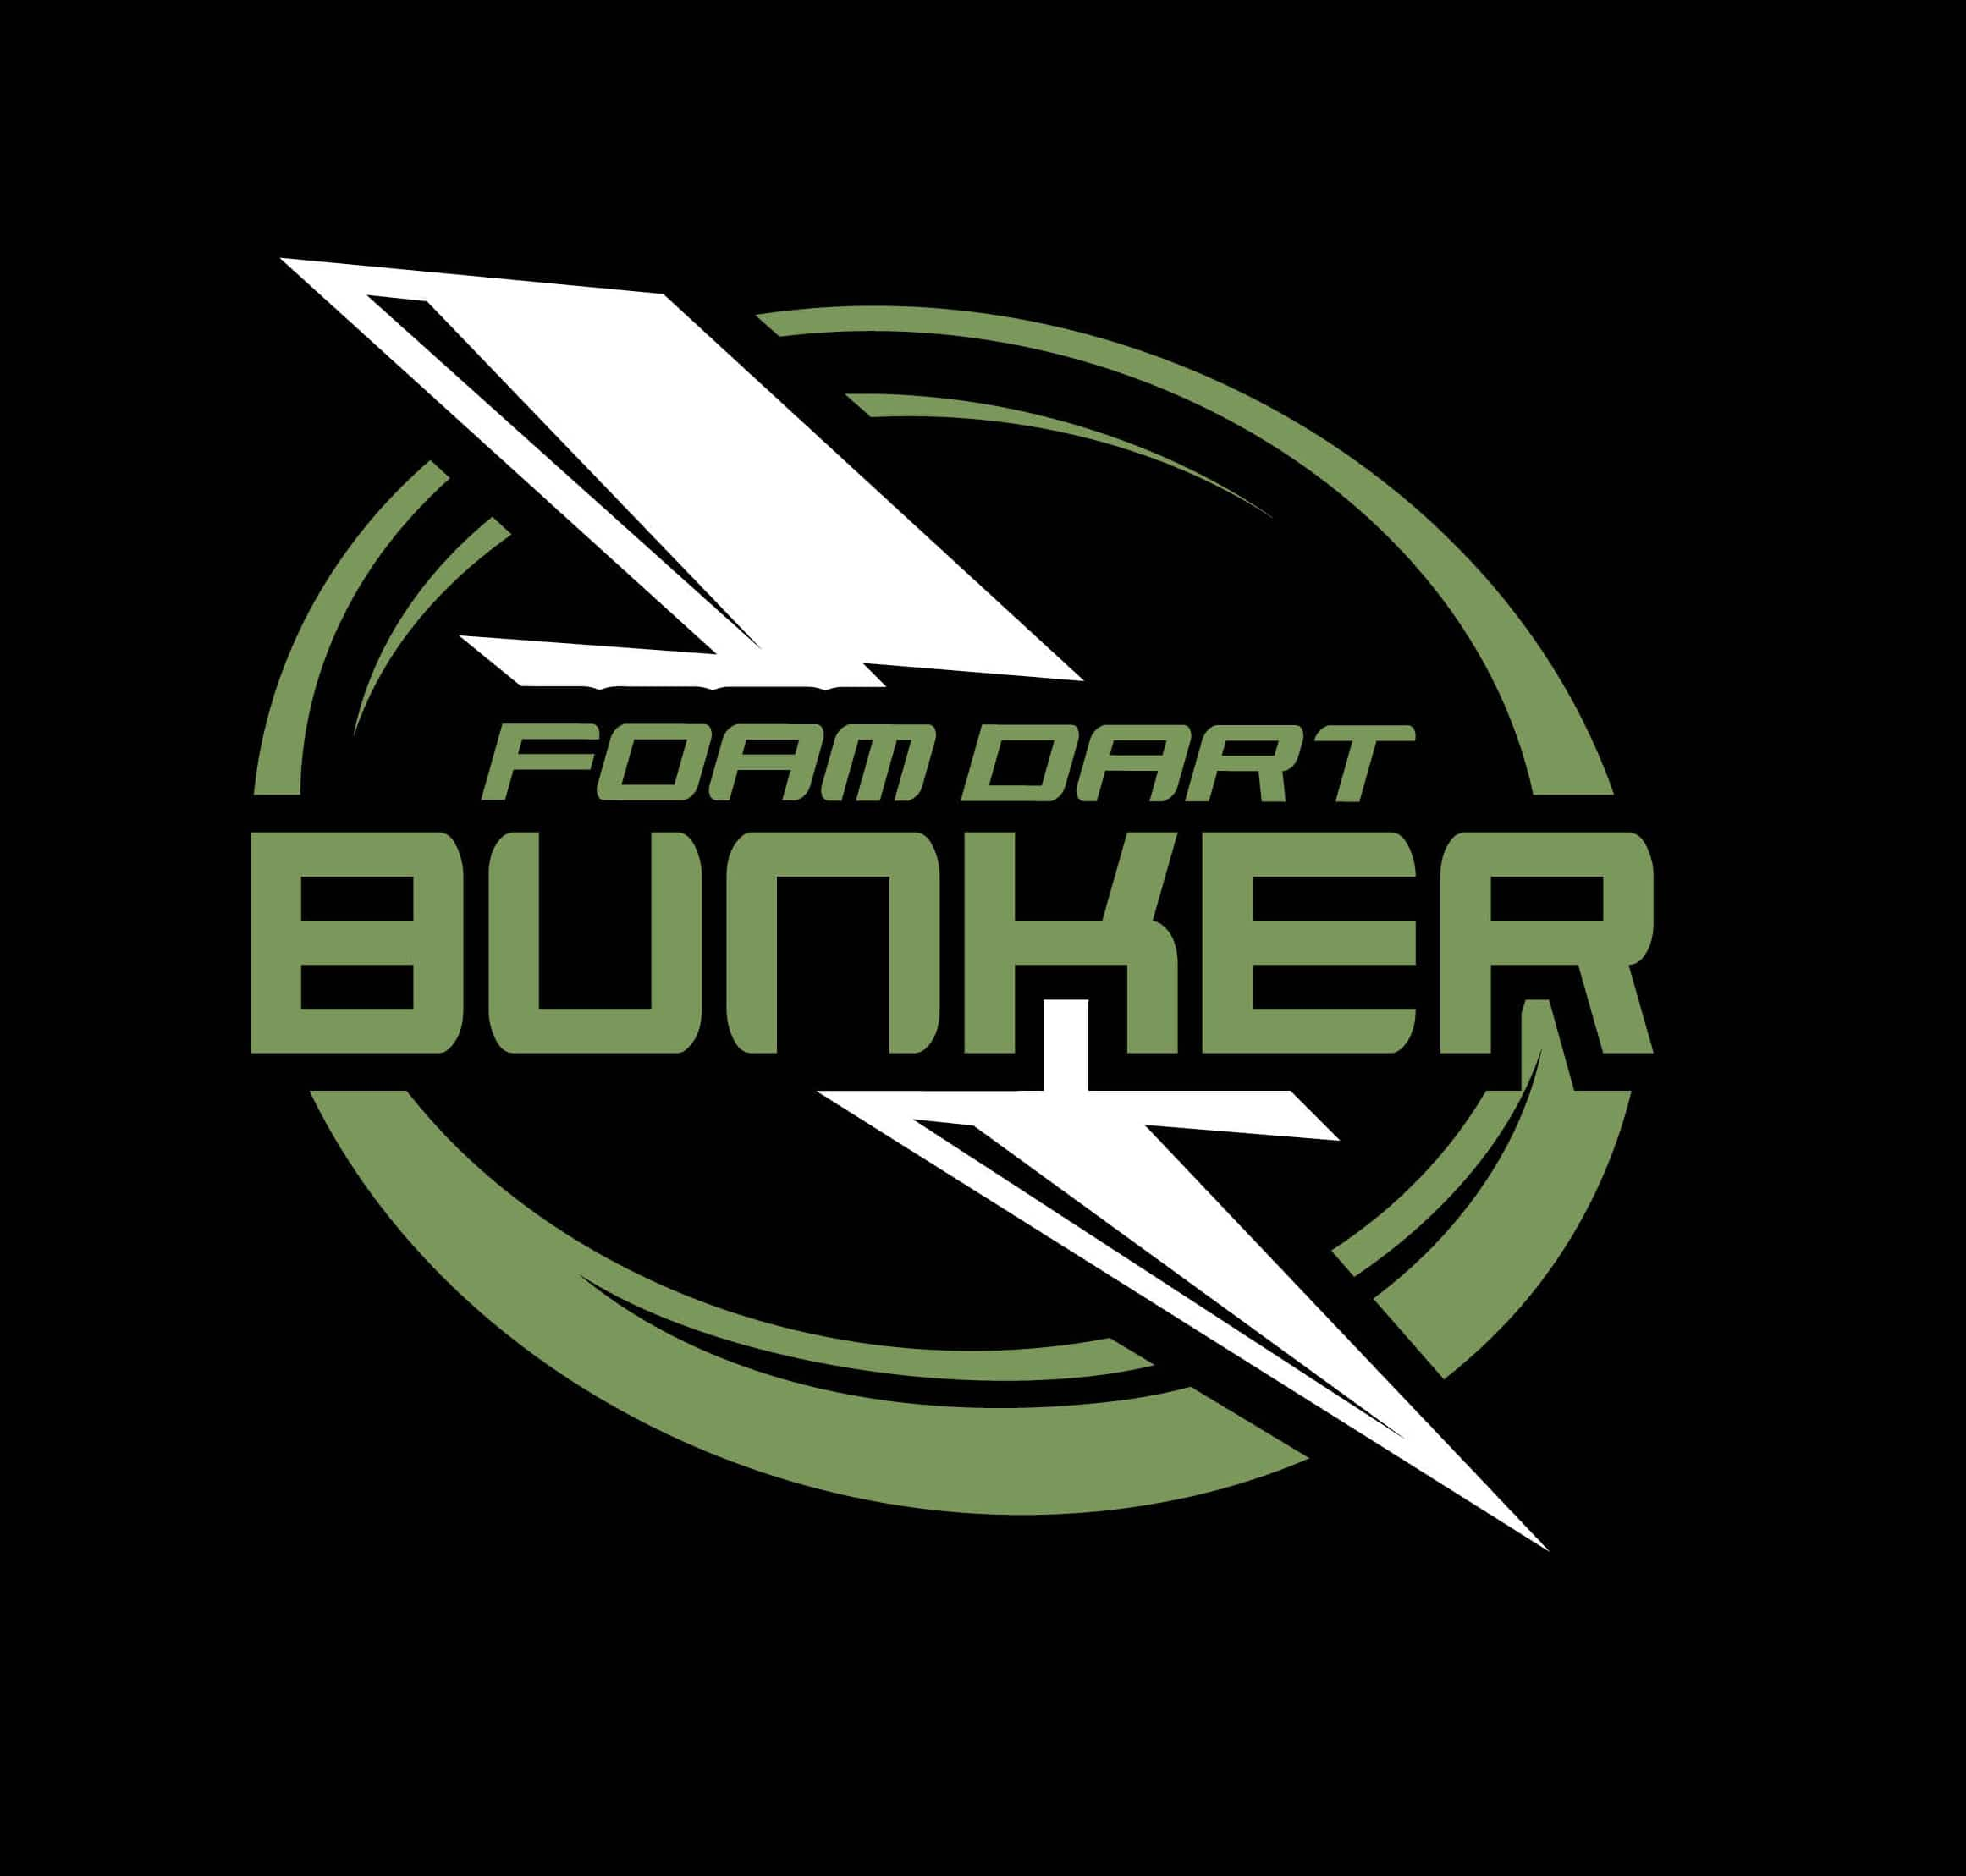 Foam Dart Bunker – Round 1 video!